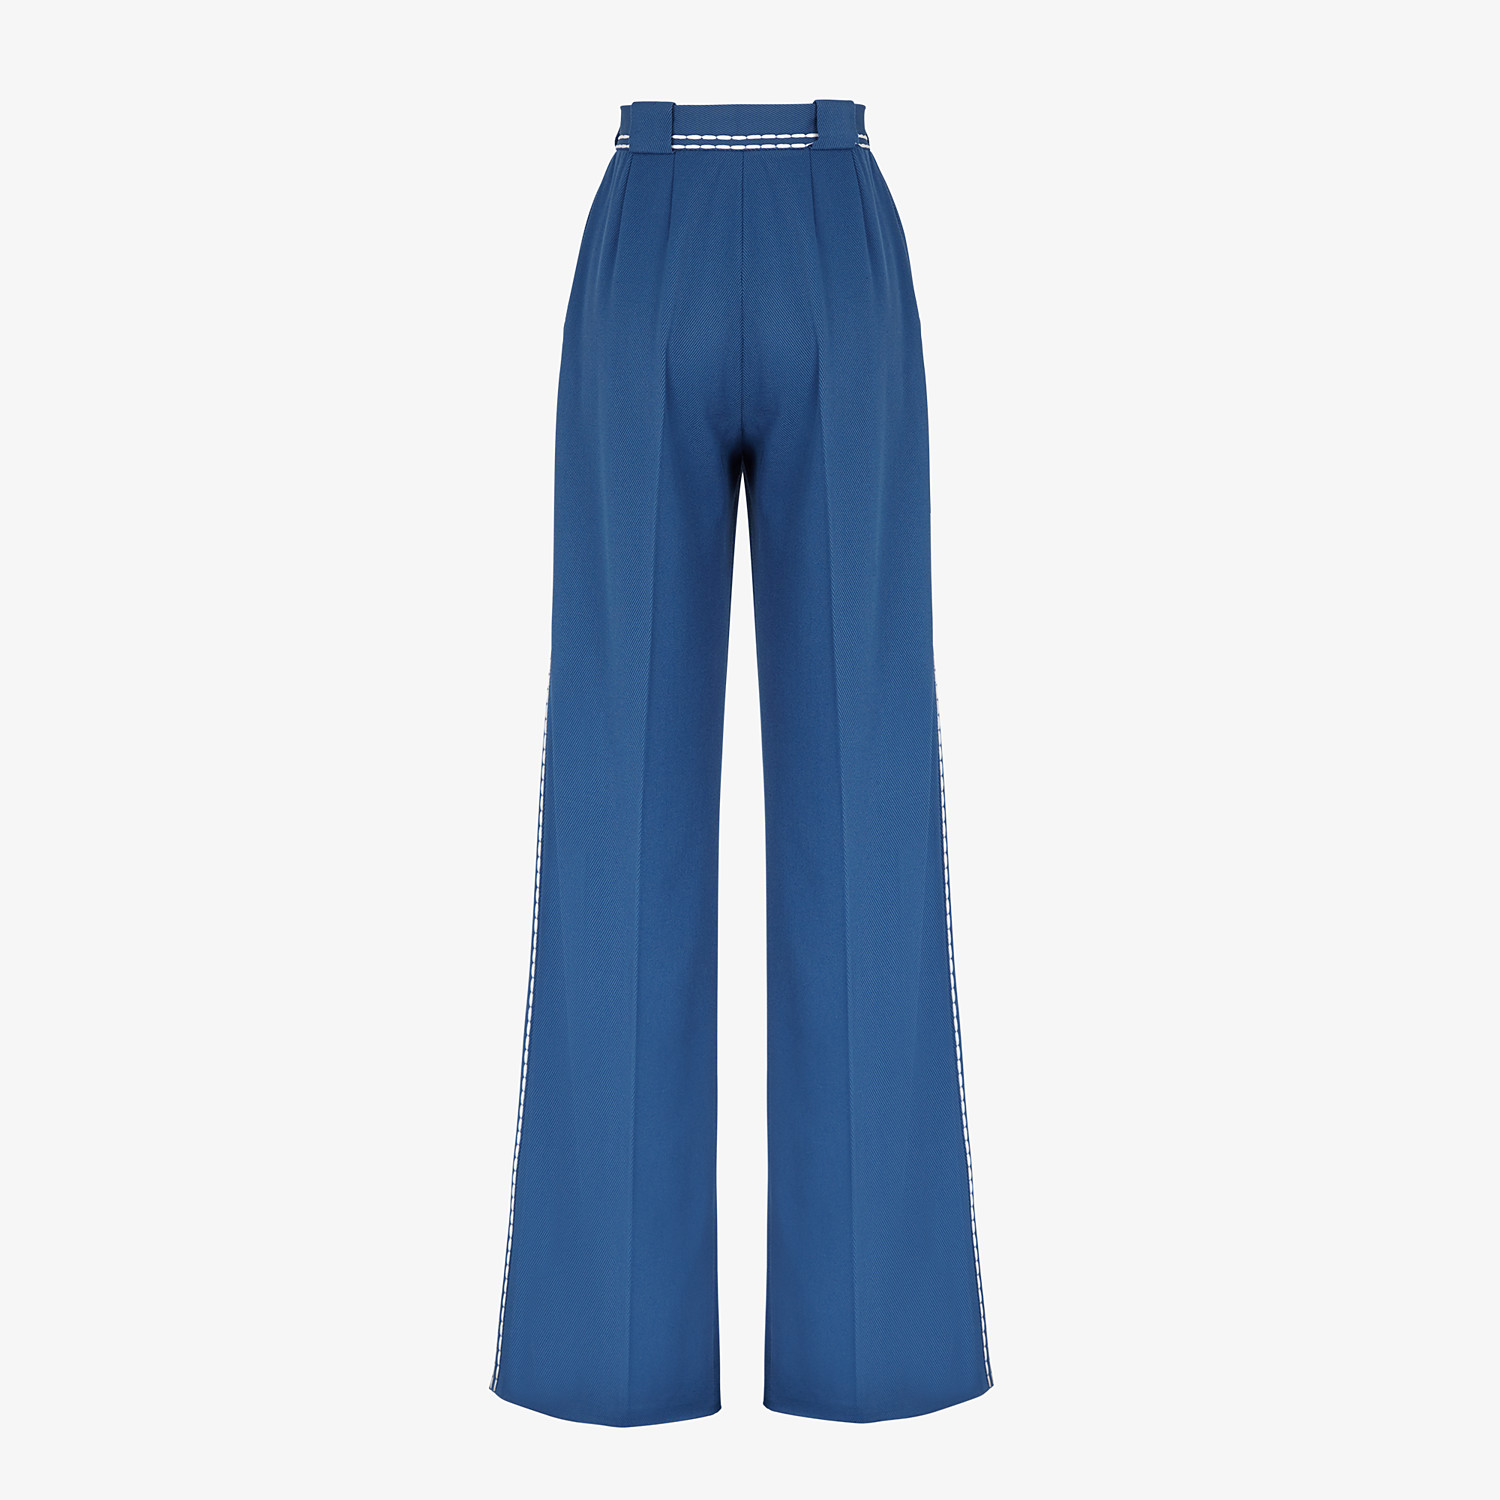 FENDI TROUSERS - Blue wool trousers - view 2 detail